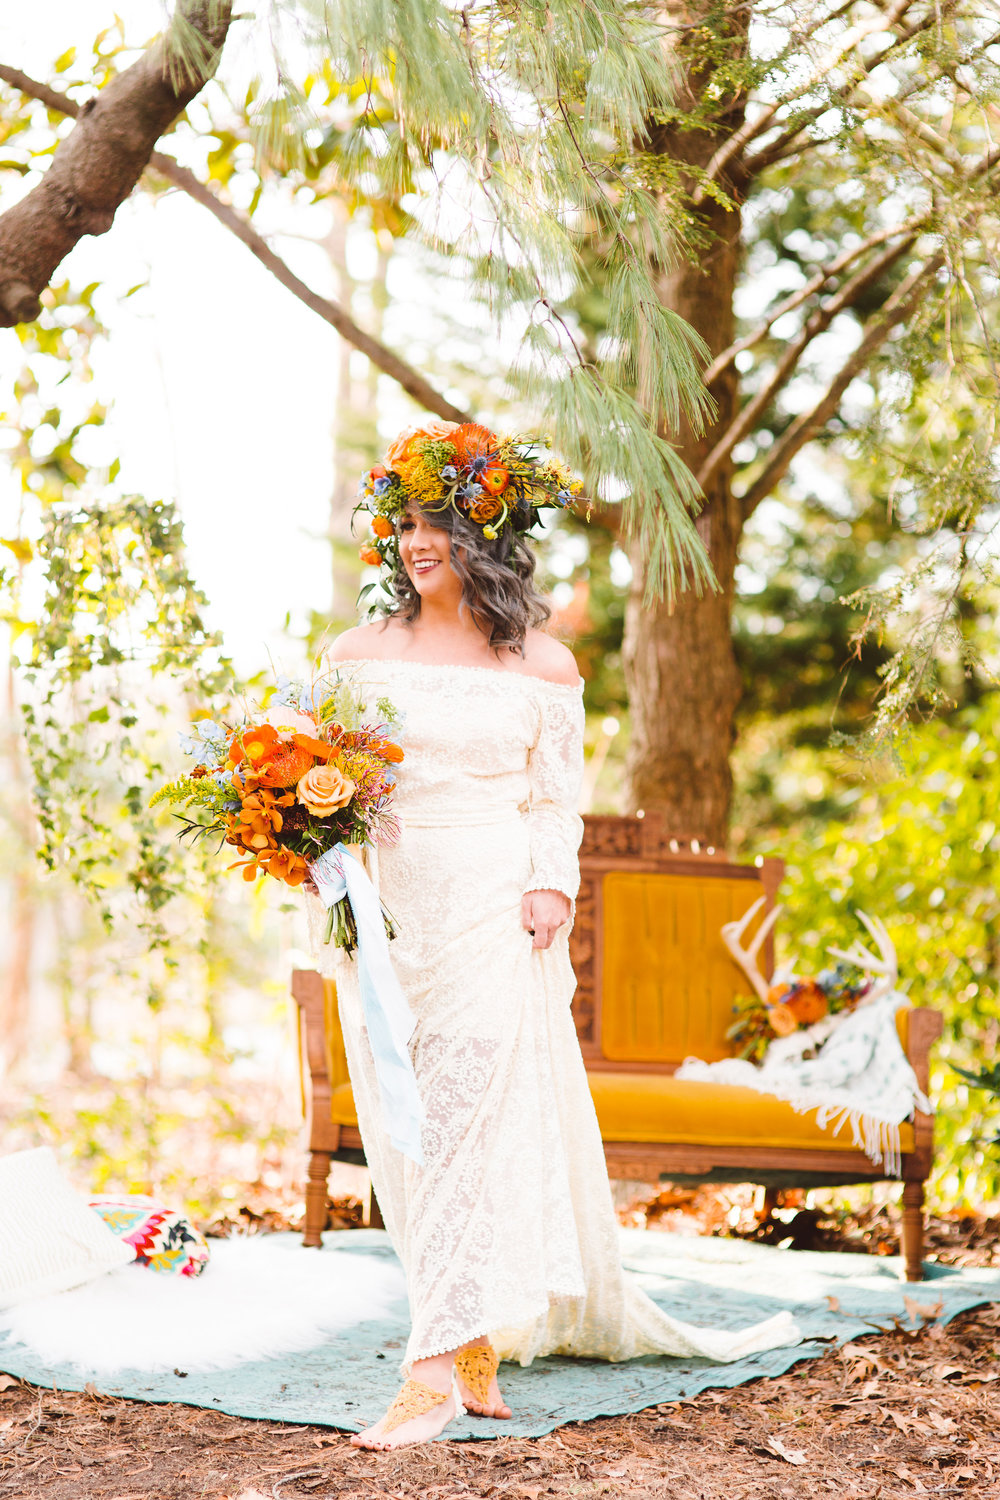 Whimsical Boho Bride